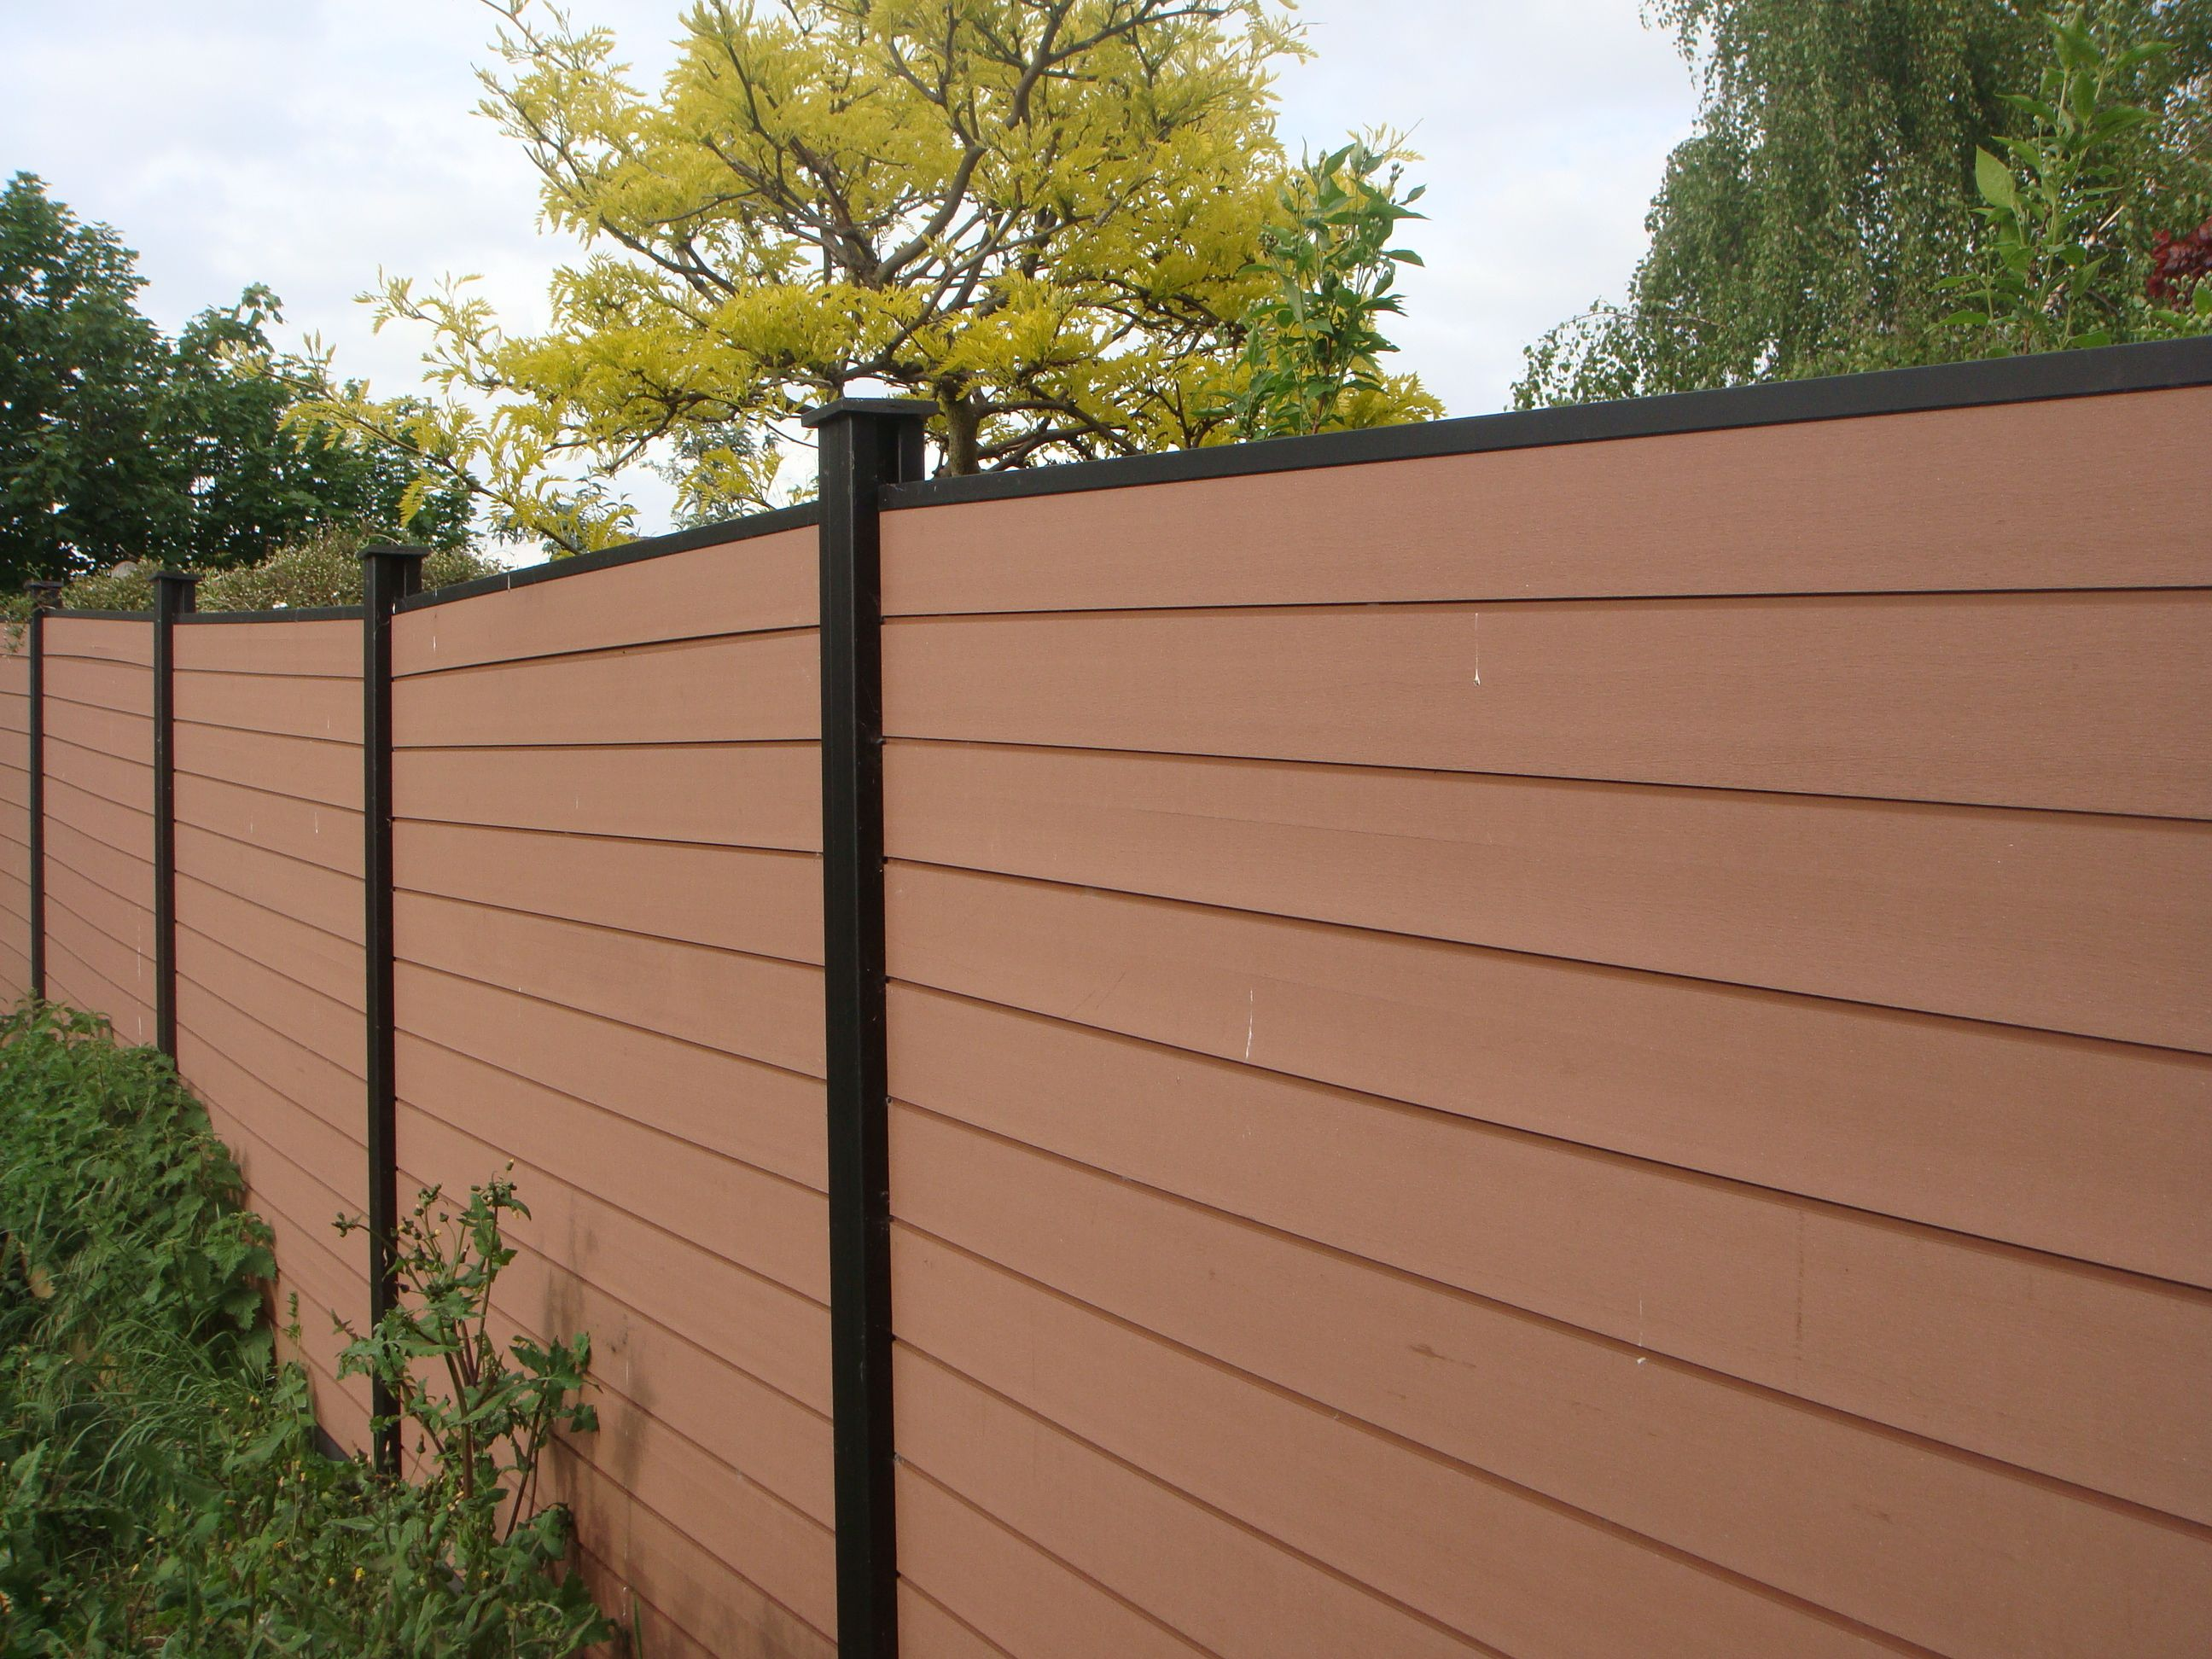 Gardens Fence Panels For Countryside , Wood Plastic Fence For Sale In Spain